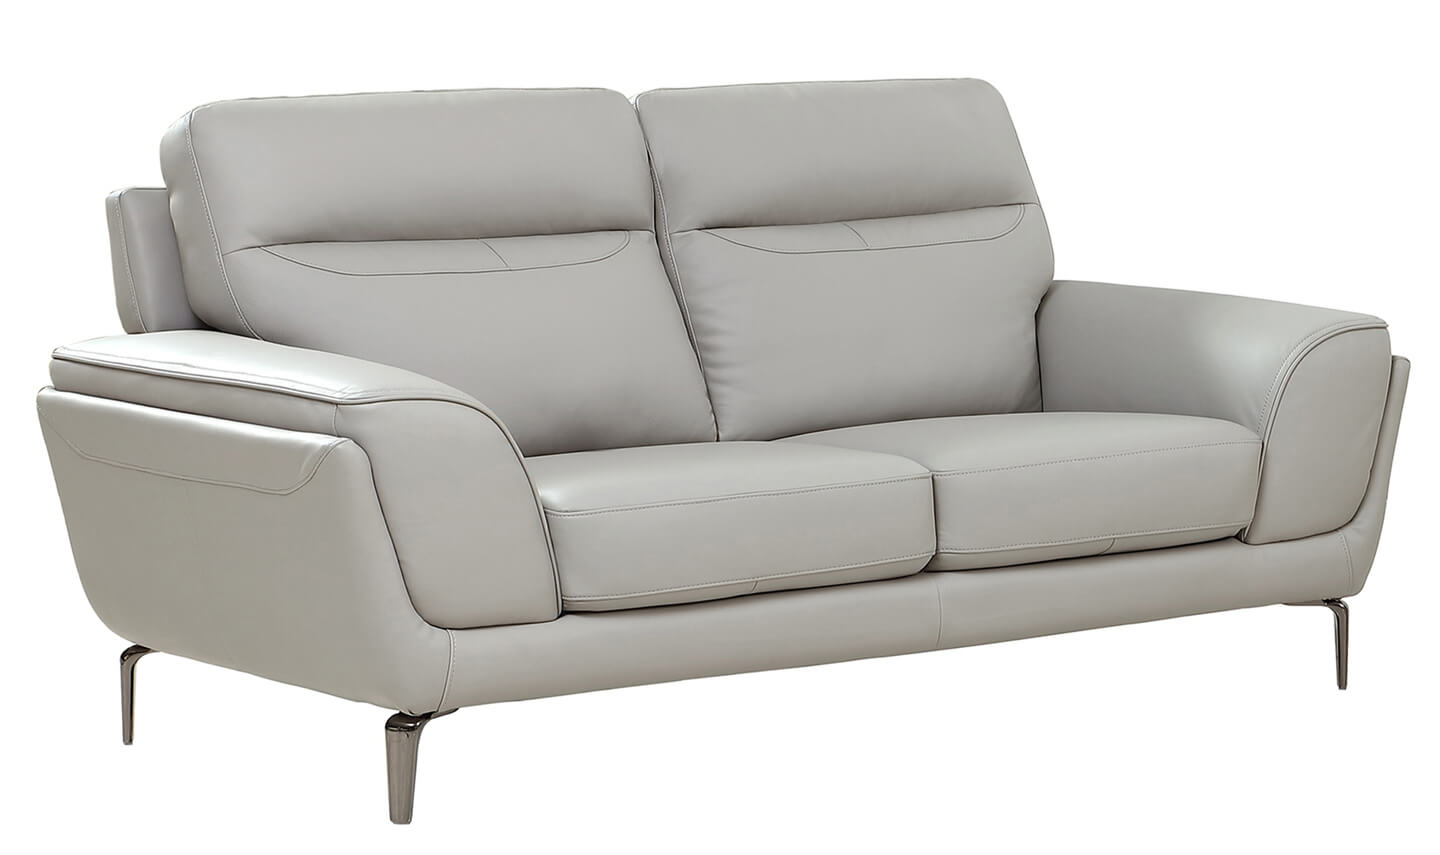 Vitalia 2 Seater Light Grey